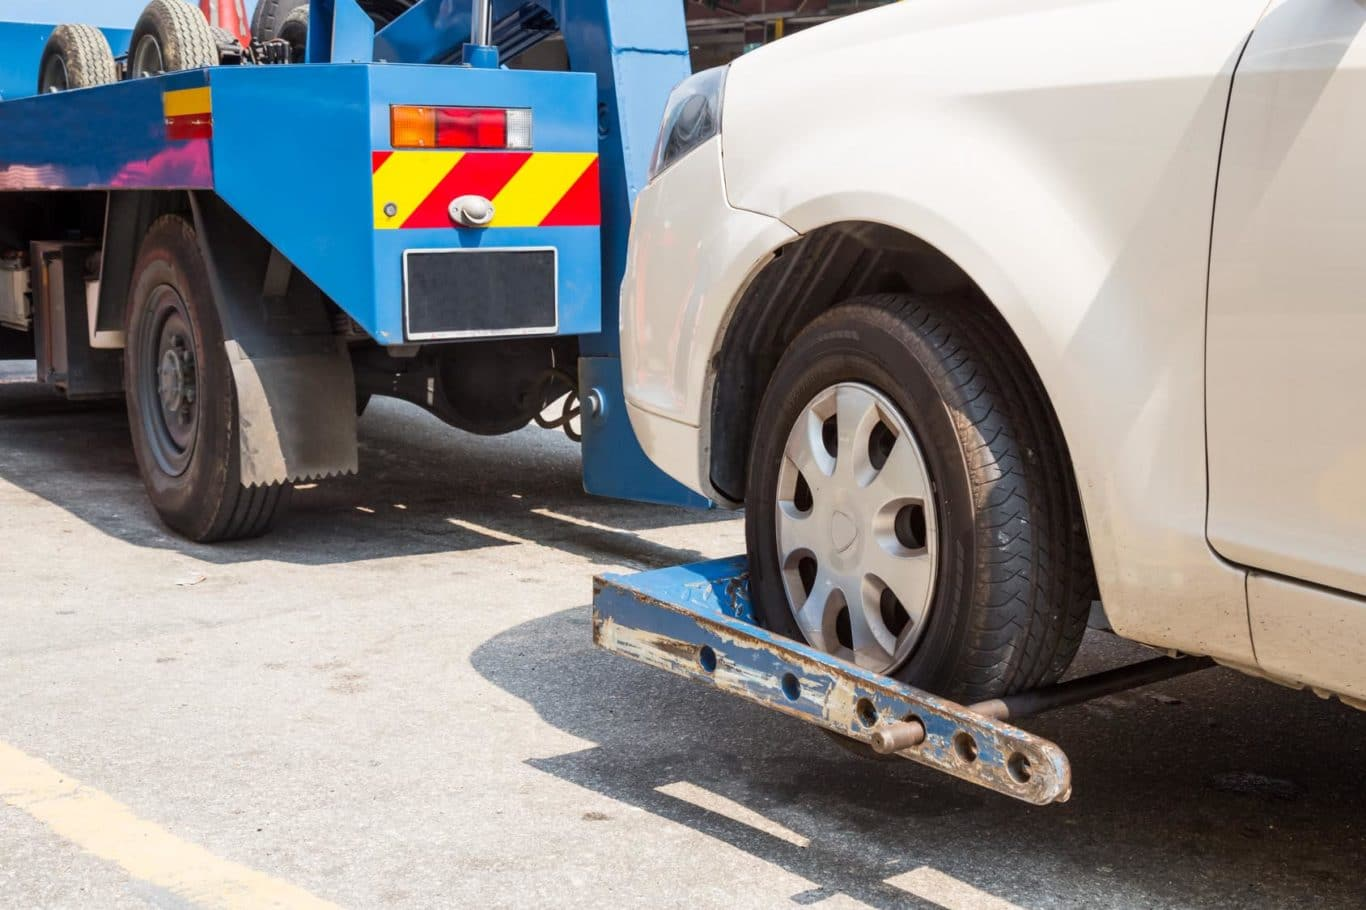 Rathdangan expert Car Towing services